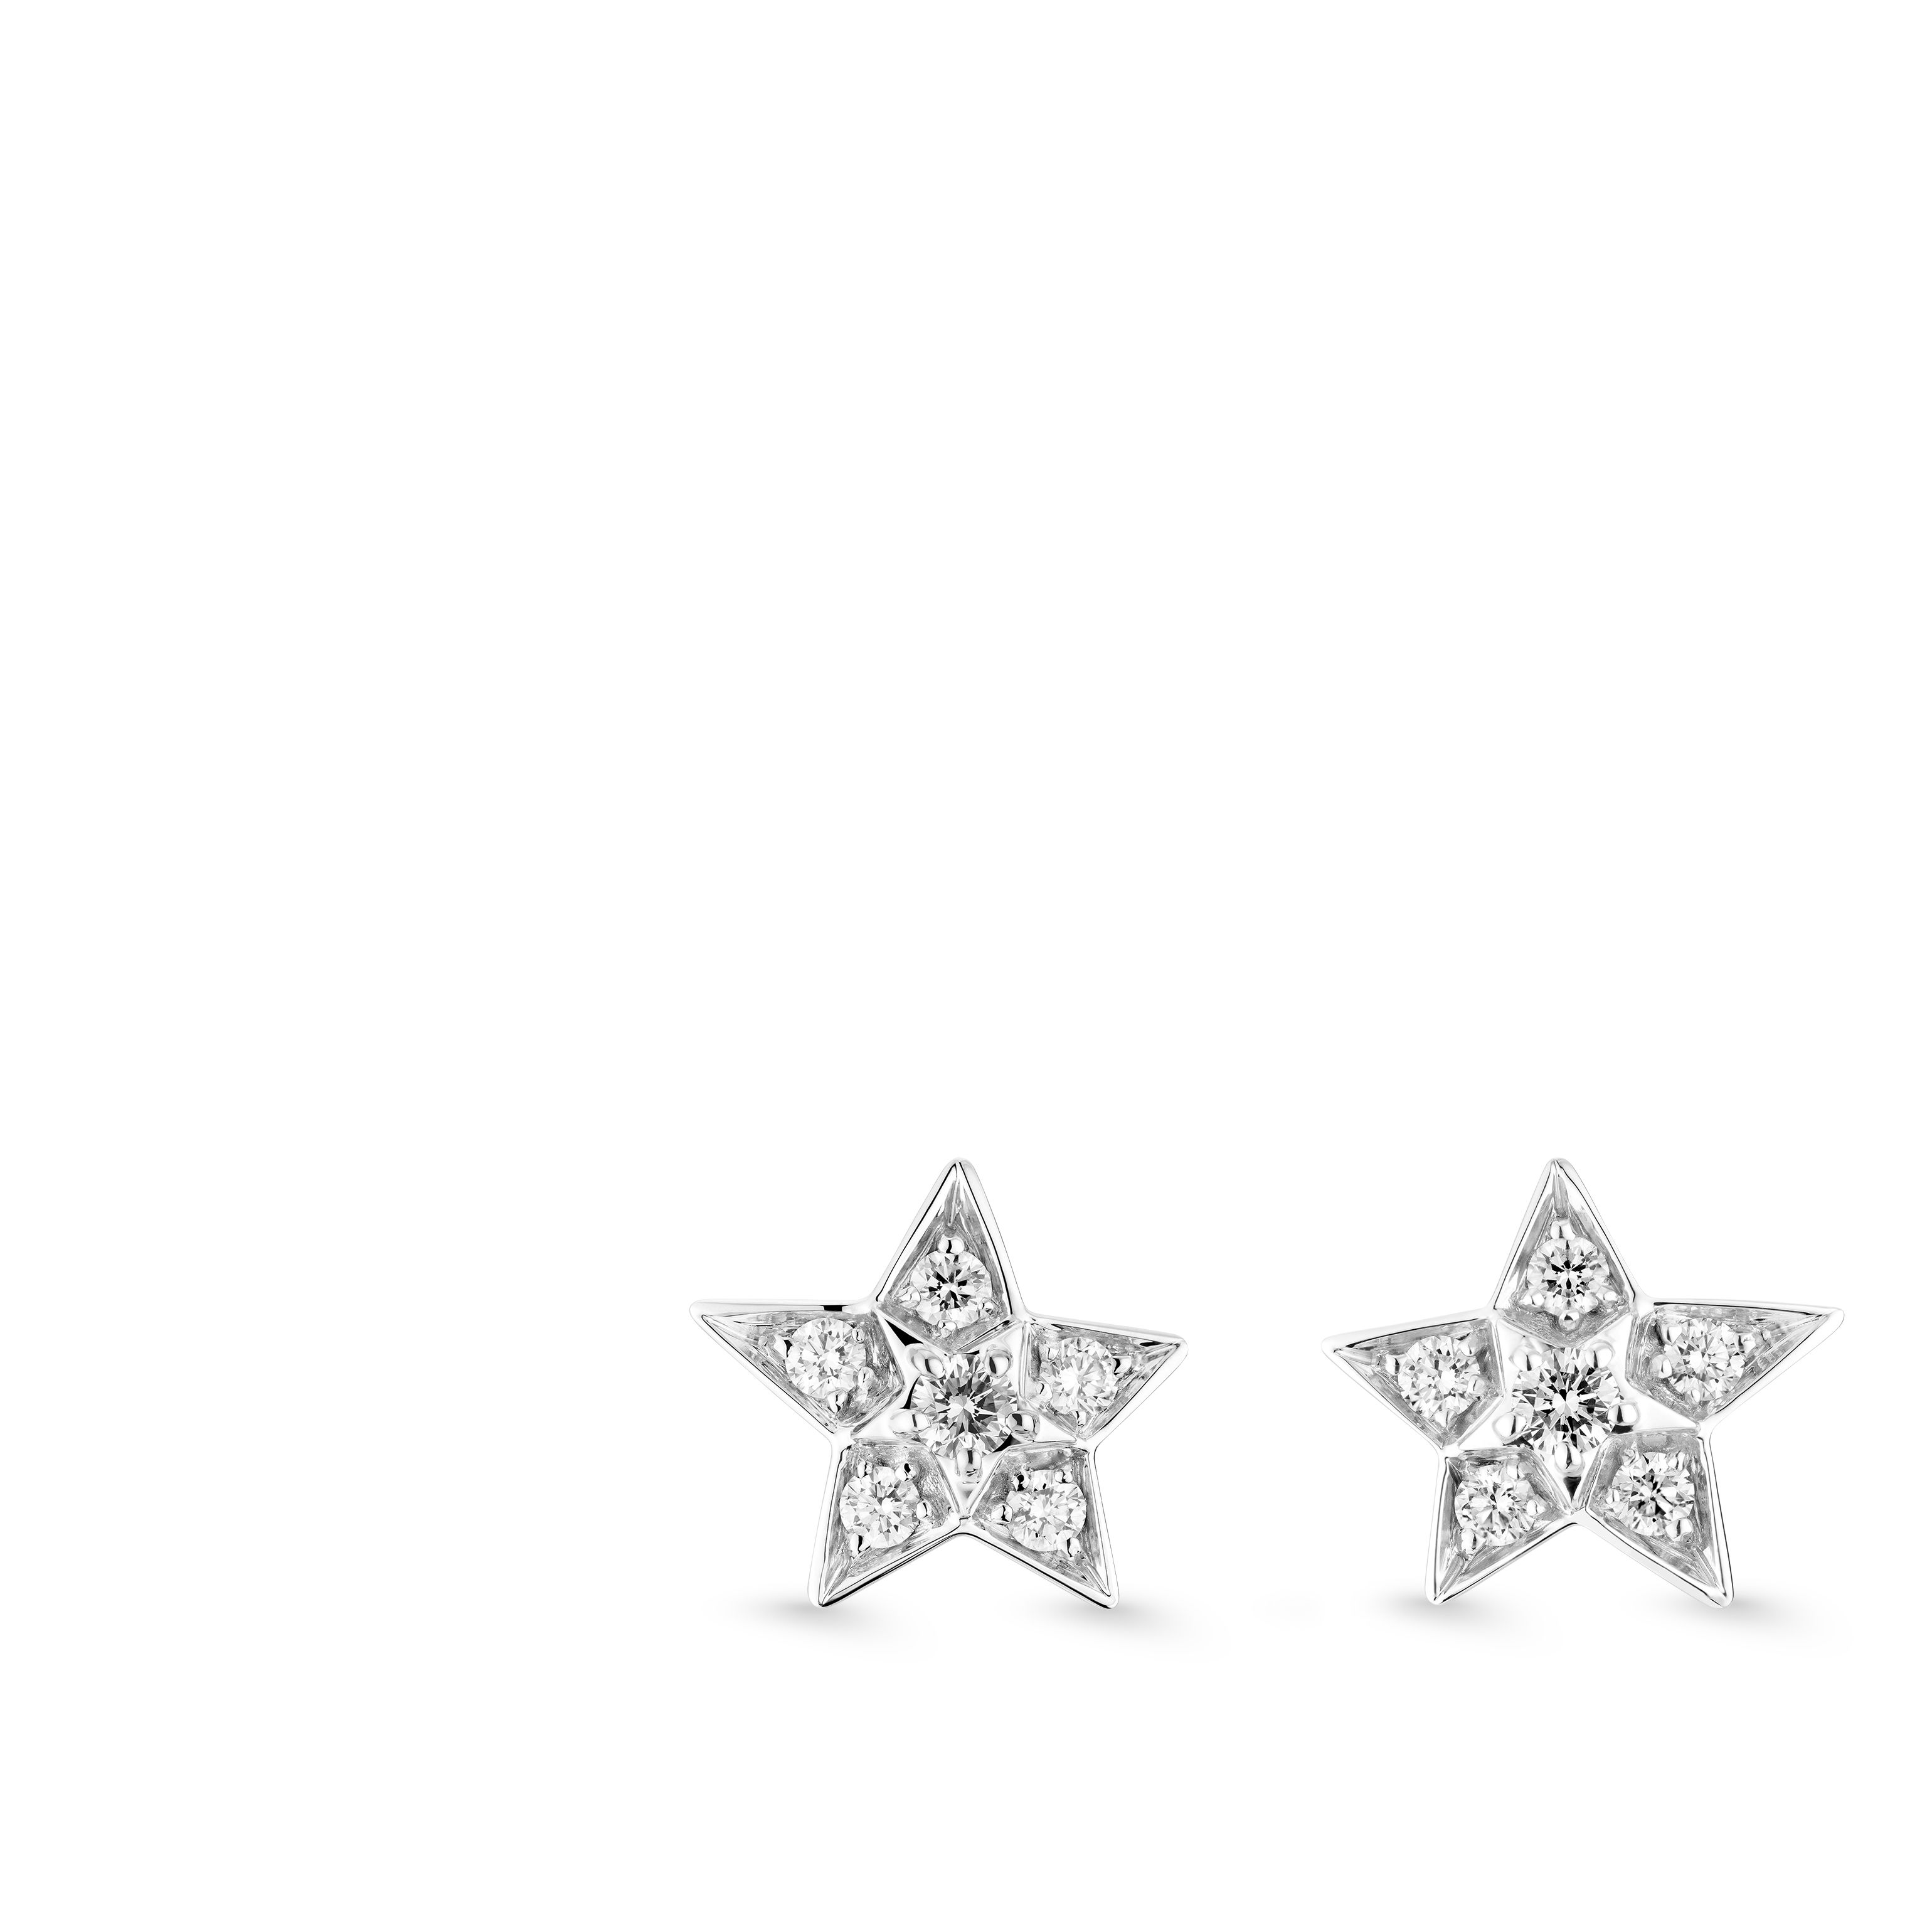 Name Comète Earrings Reference J0464 Collection Category Materials White Golddiamond